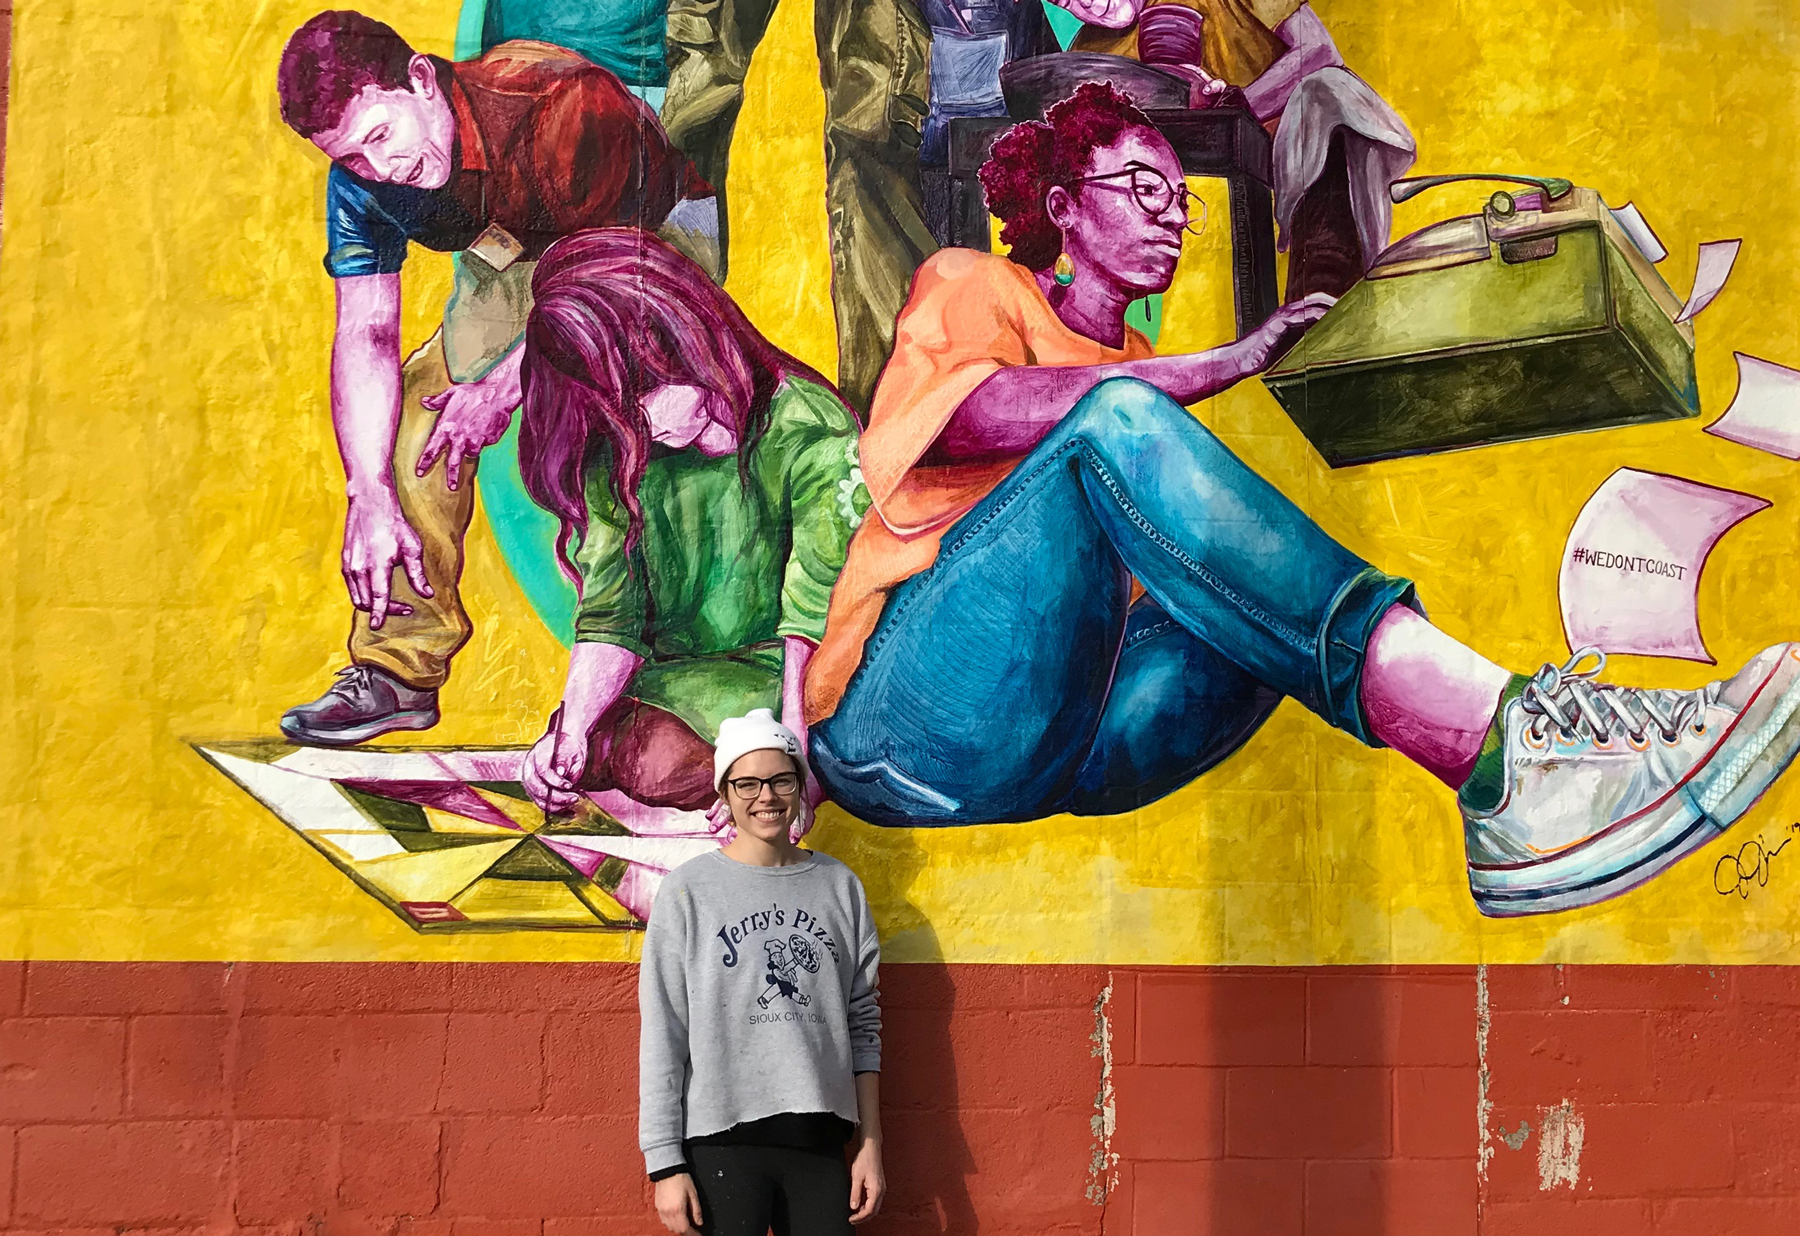 Artist Jenna Johnson next to mural